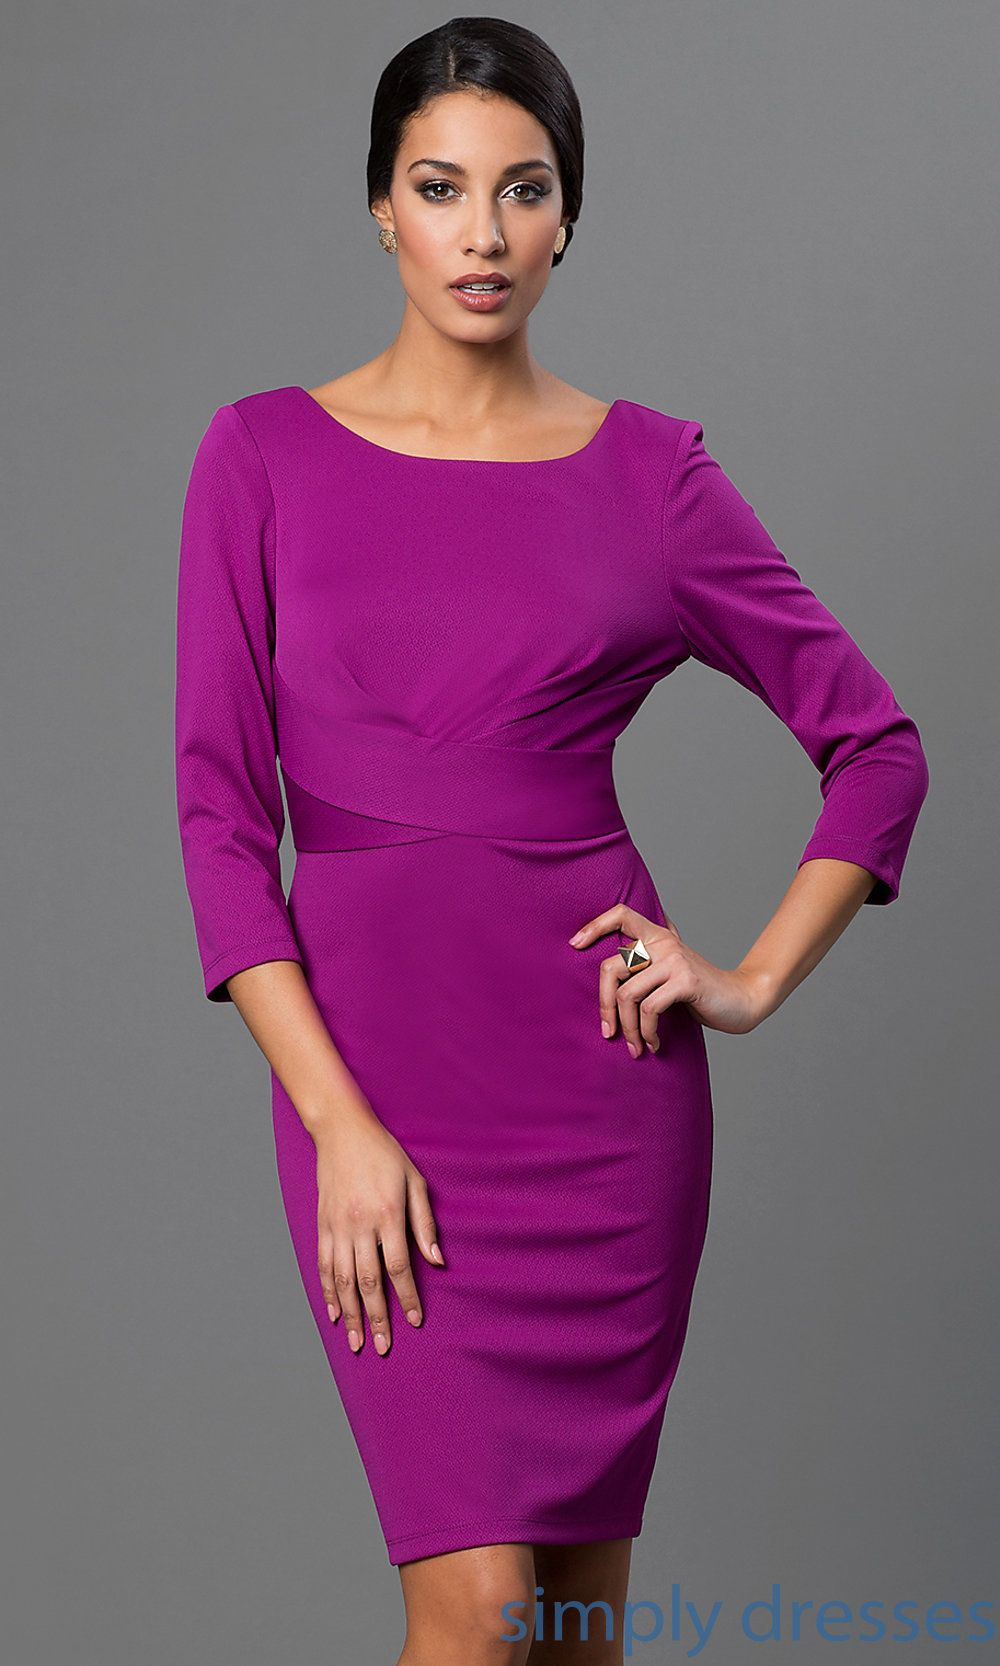 Knee Length Purple Dress with Three Quarter Length Sleeves ZAR-DR ...